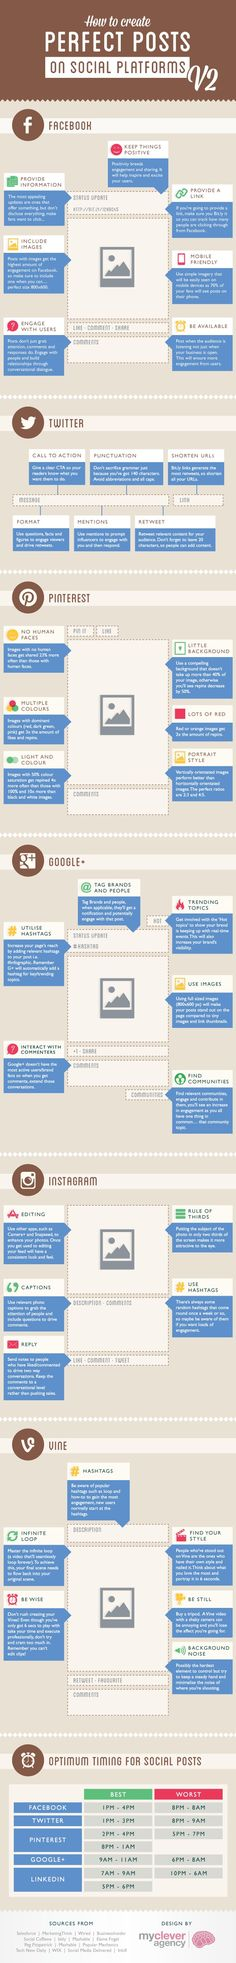 Facebook, Twitter, Instagram, Pinterest, Vine – How To Create Perfect Social Media Posts [INFOGRAPHIC]